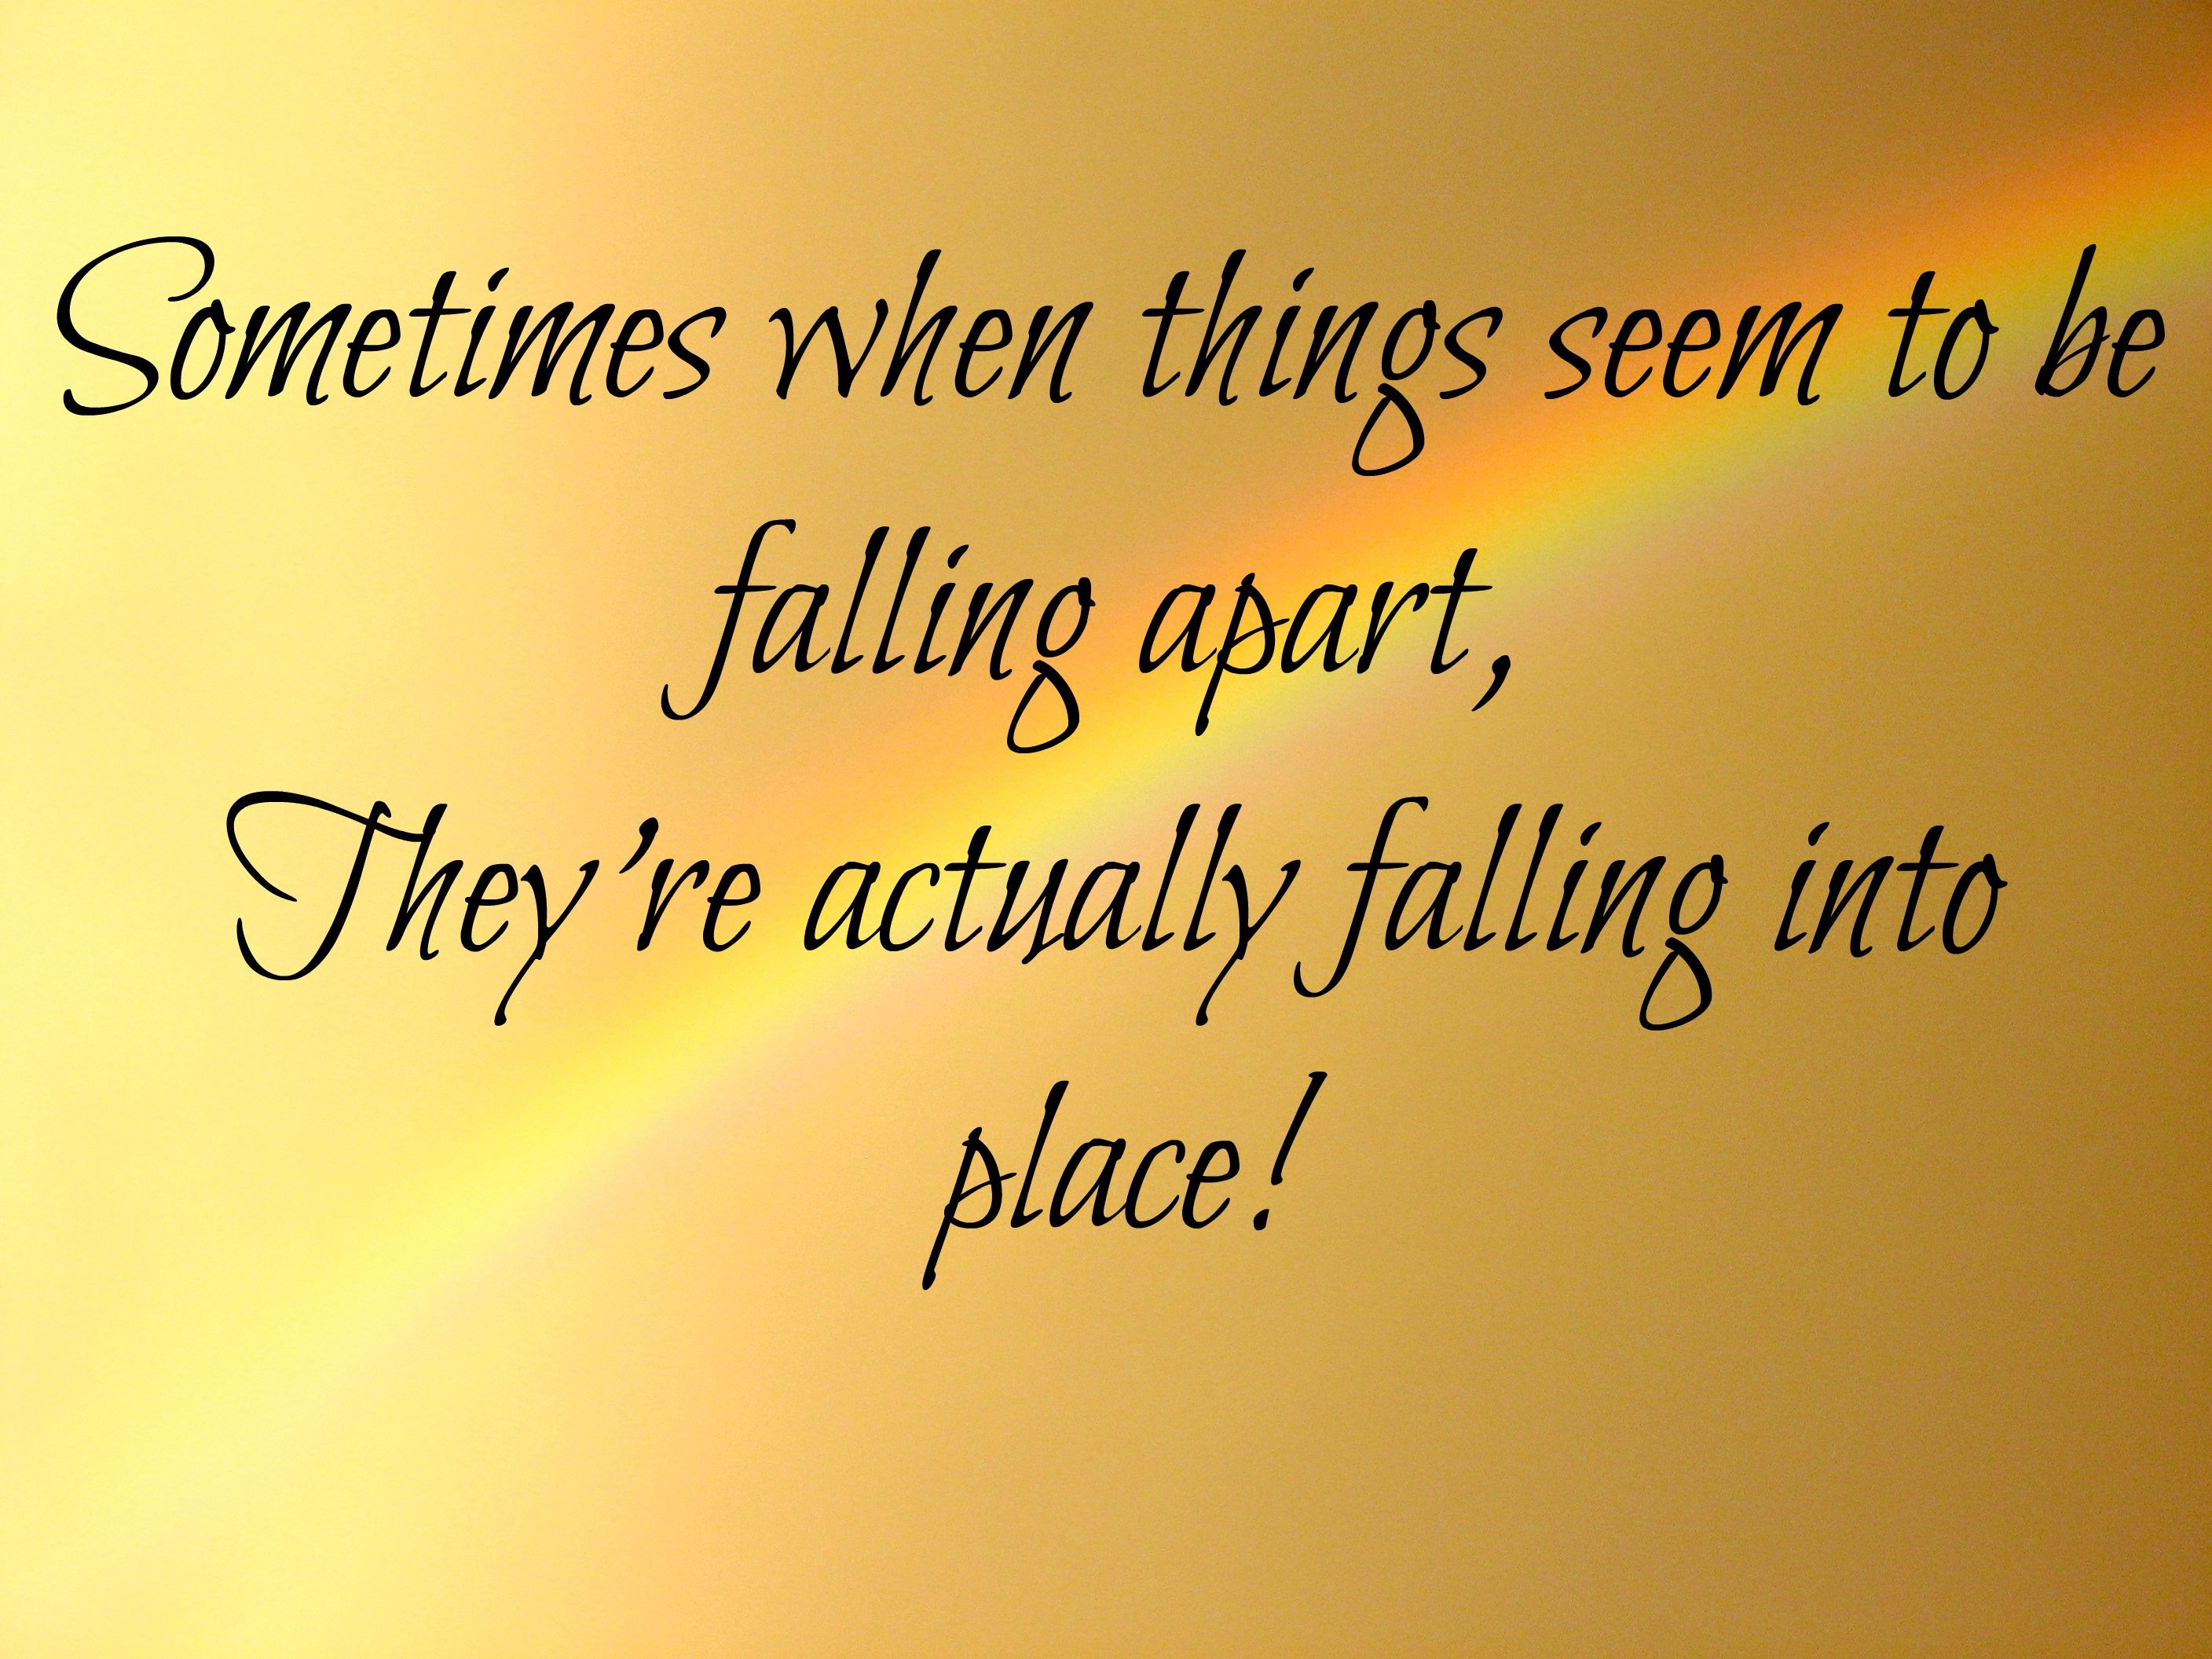 Sometimes when things seem to be falling apart They re actually